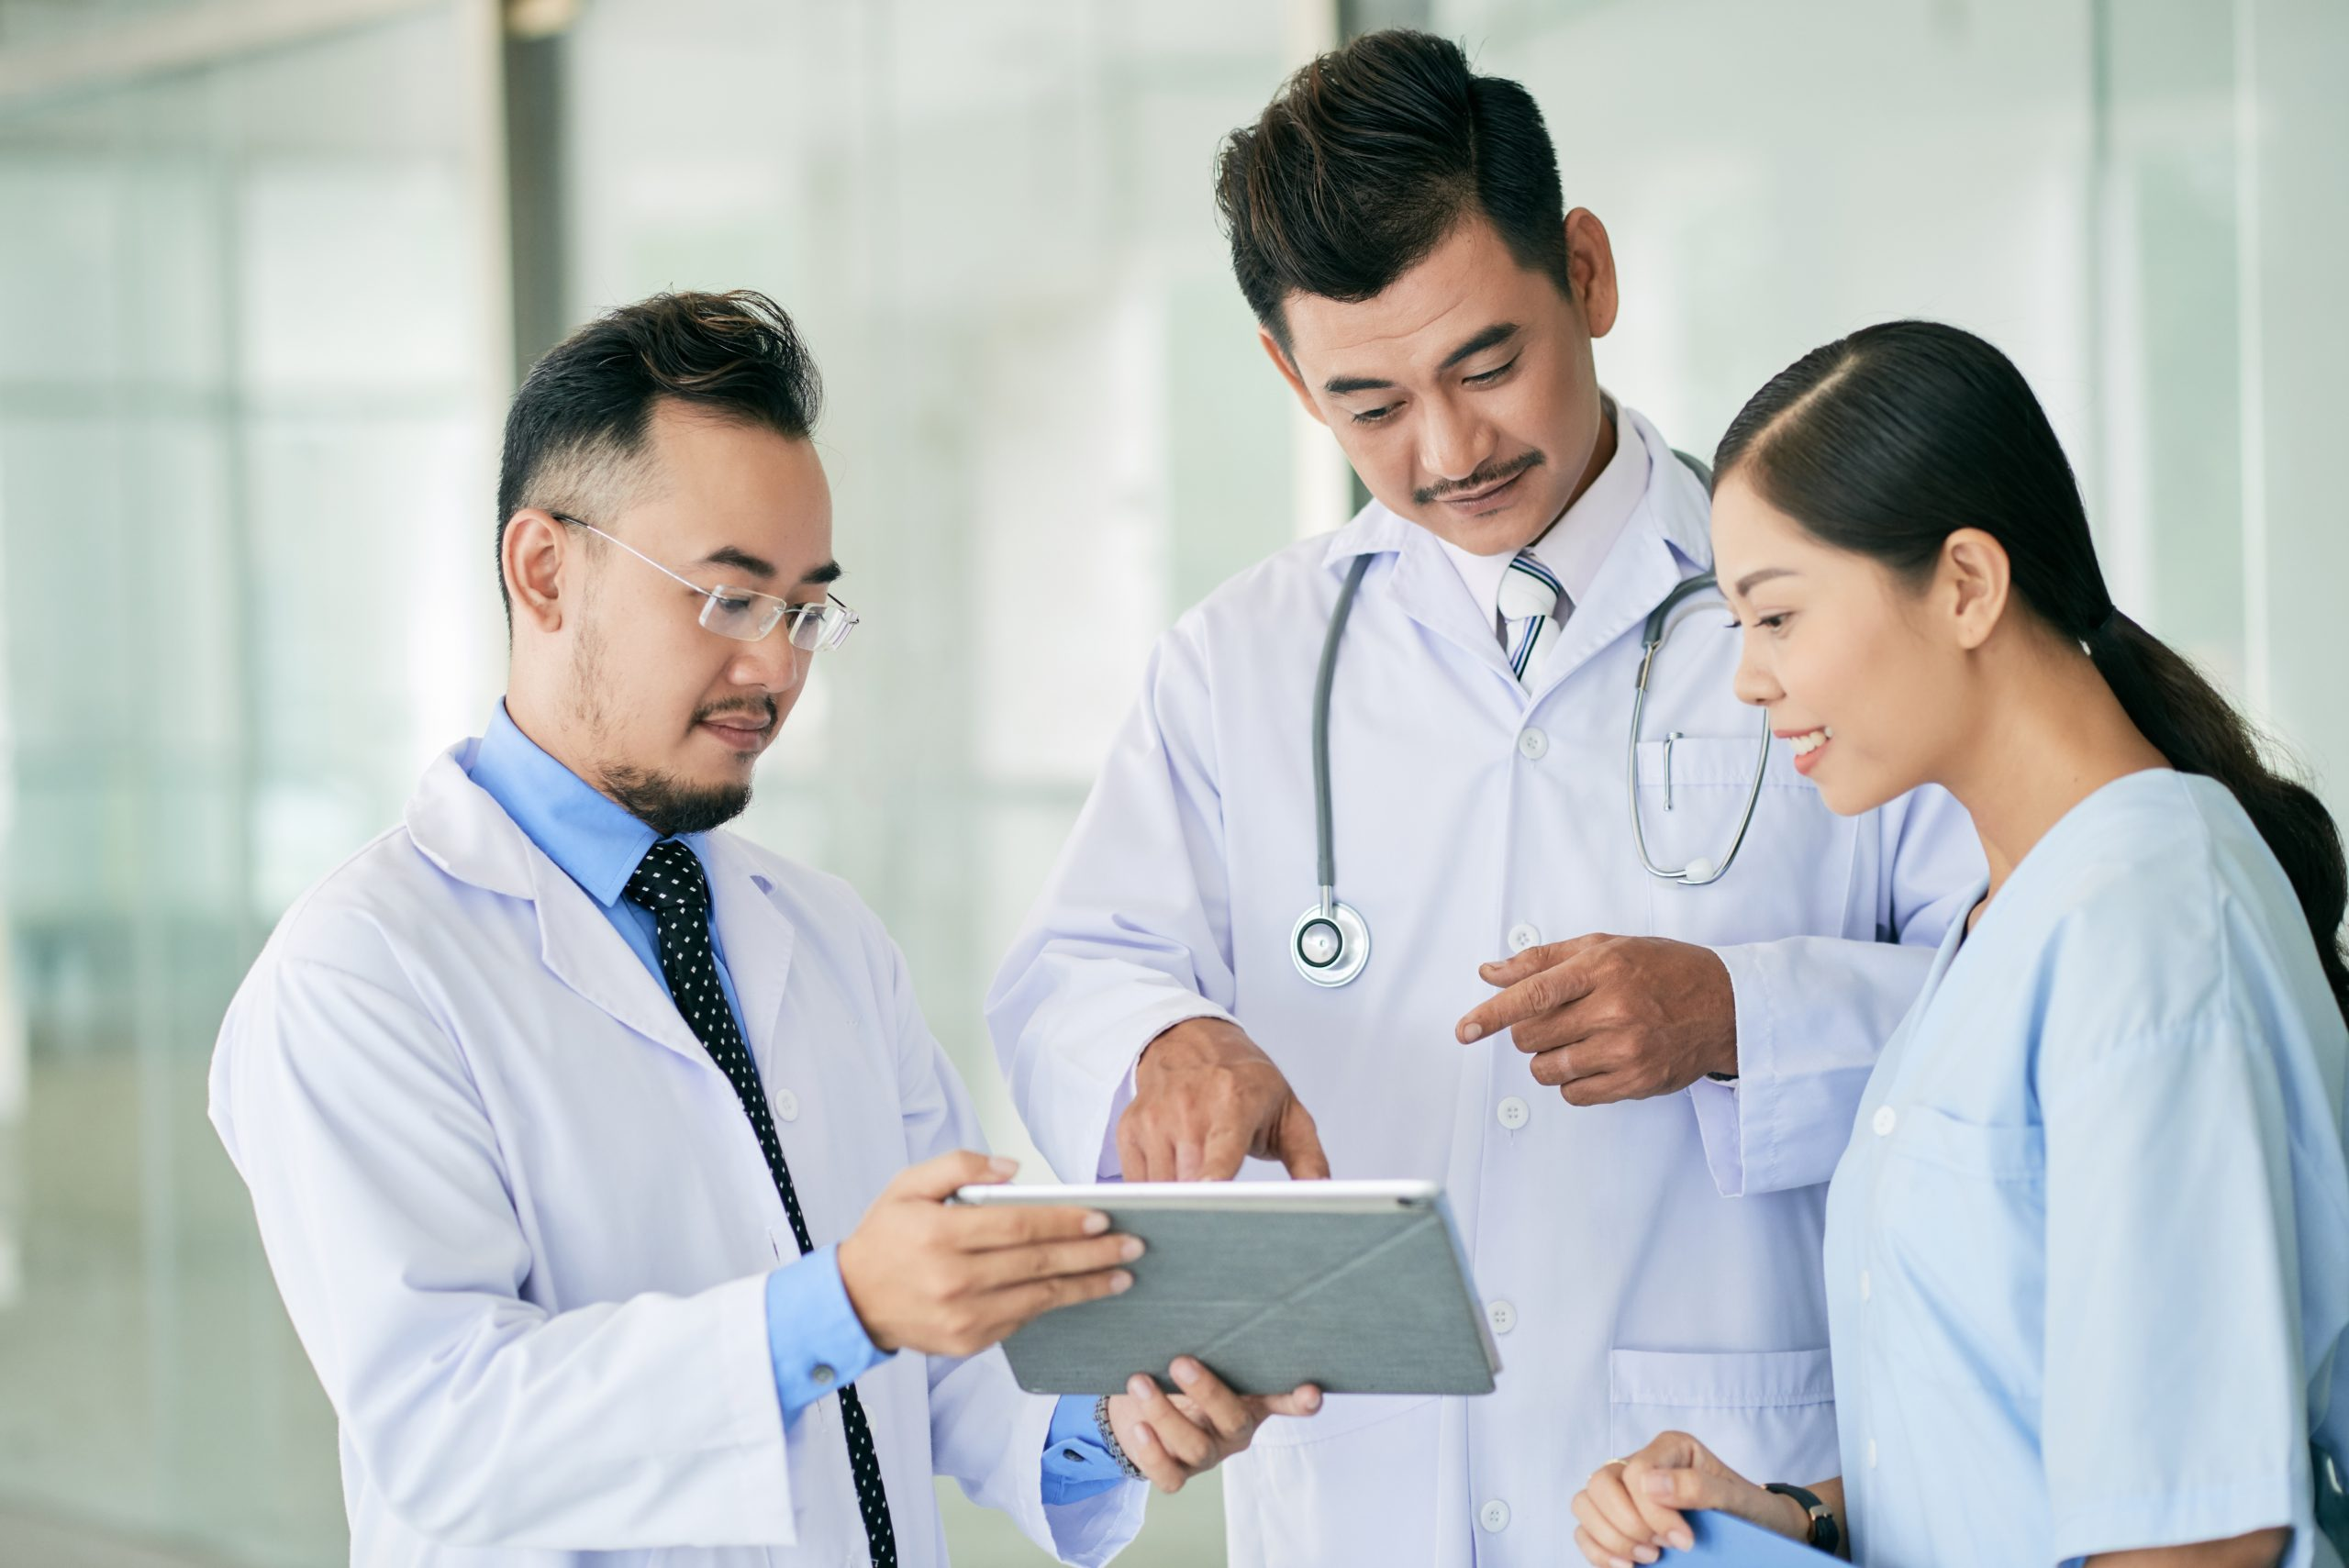 doctor-stethoscope-sitting-people